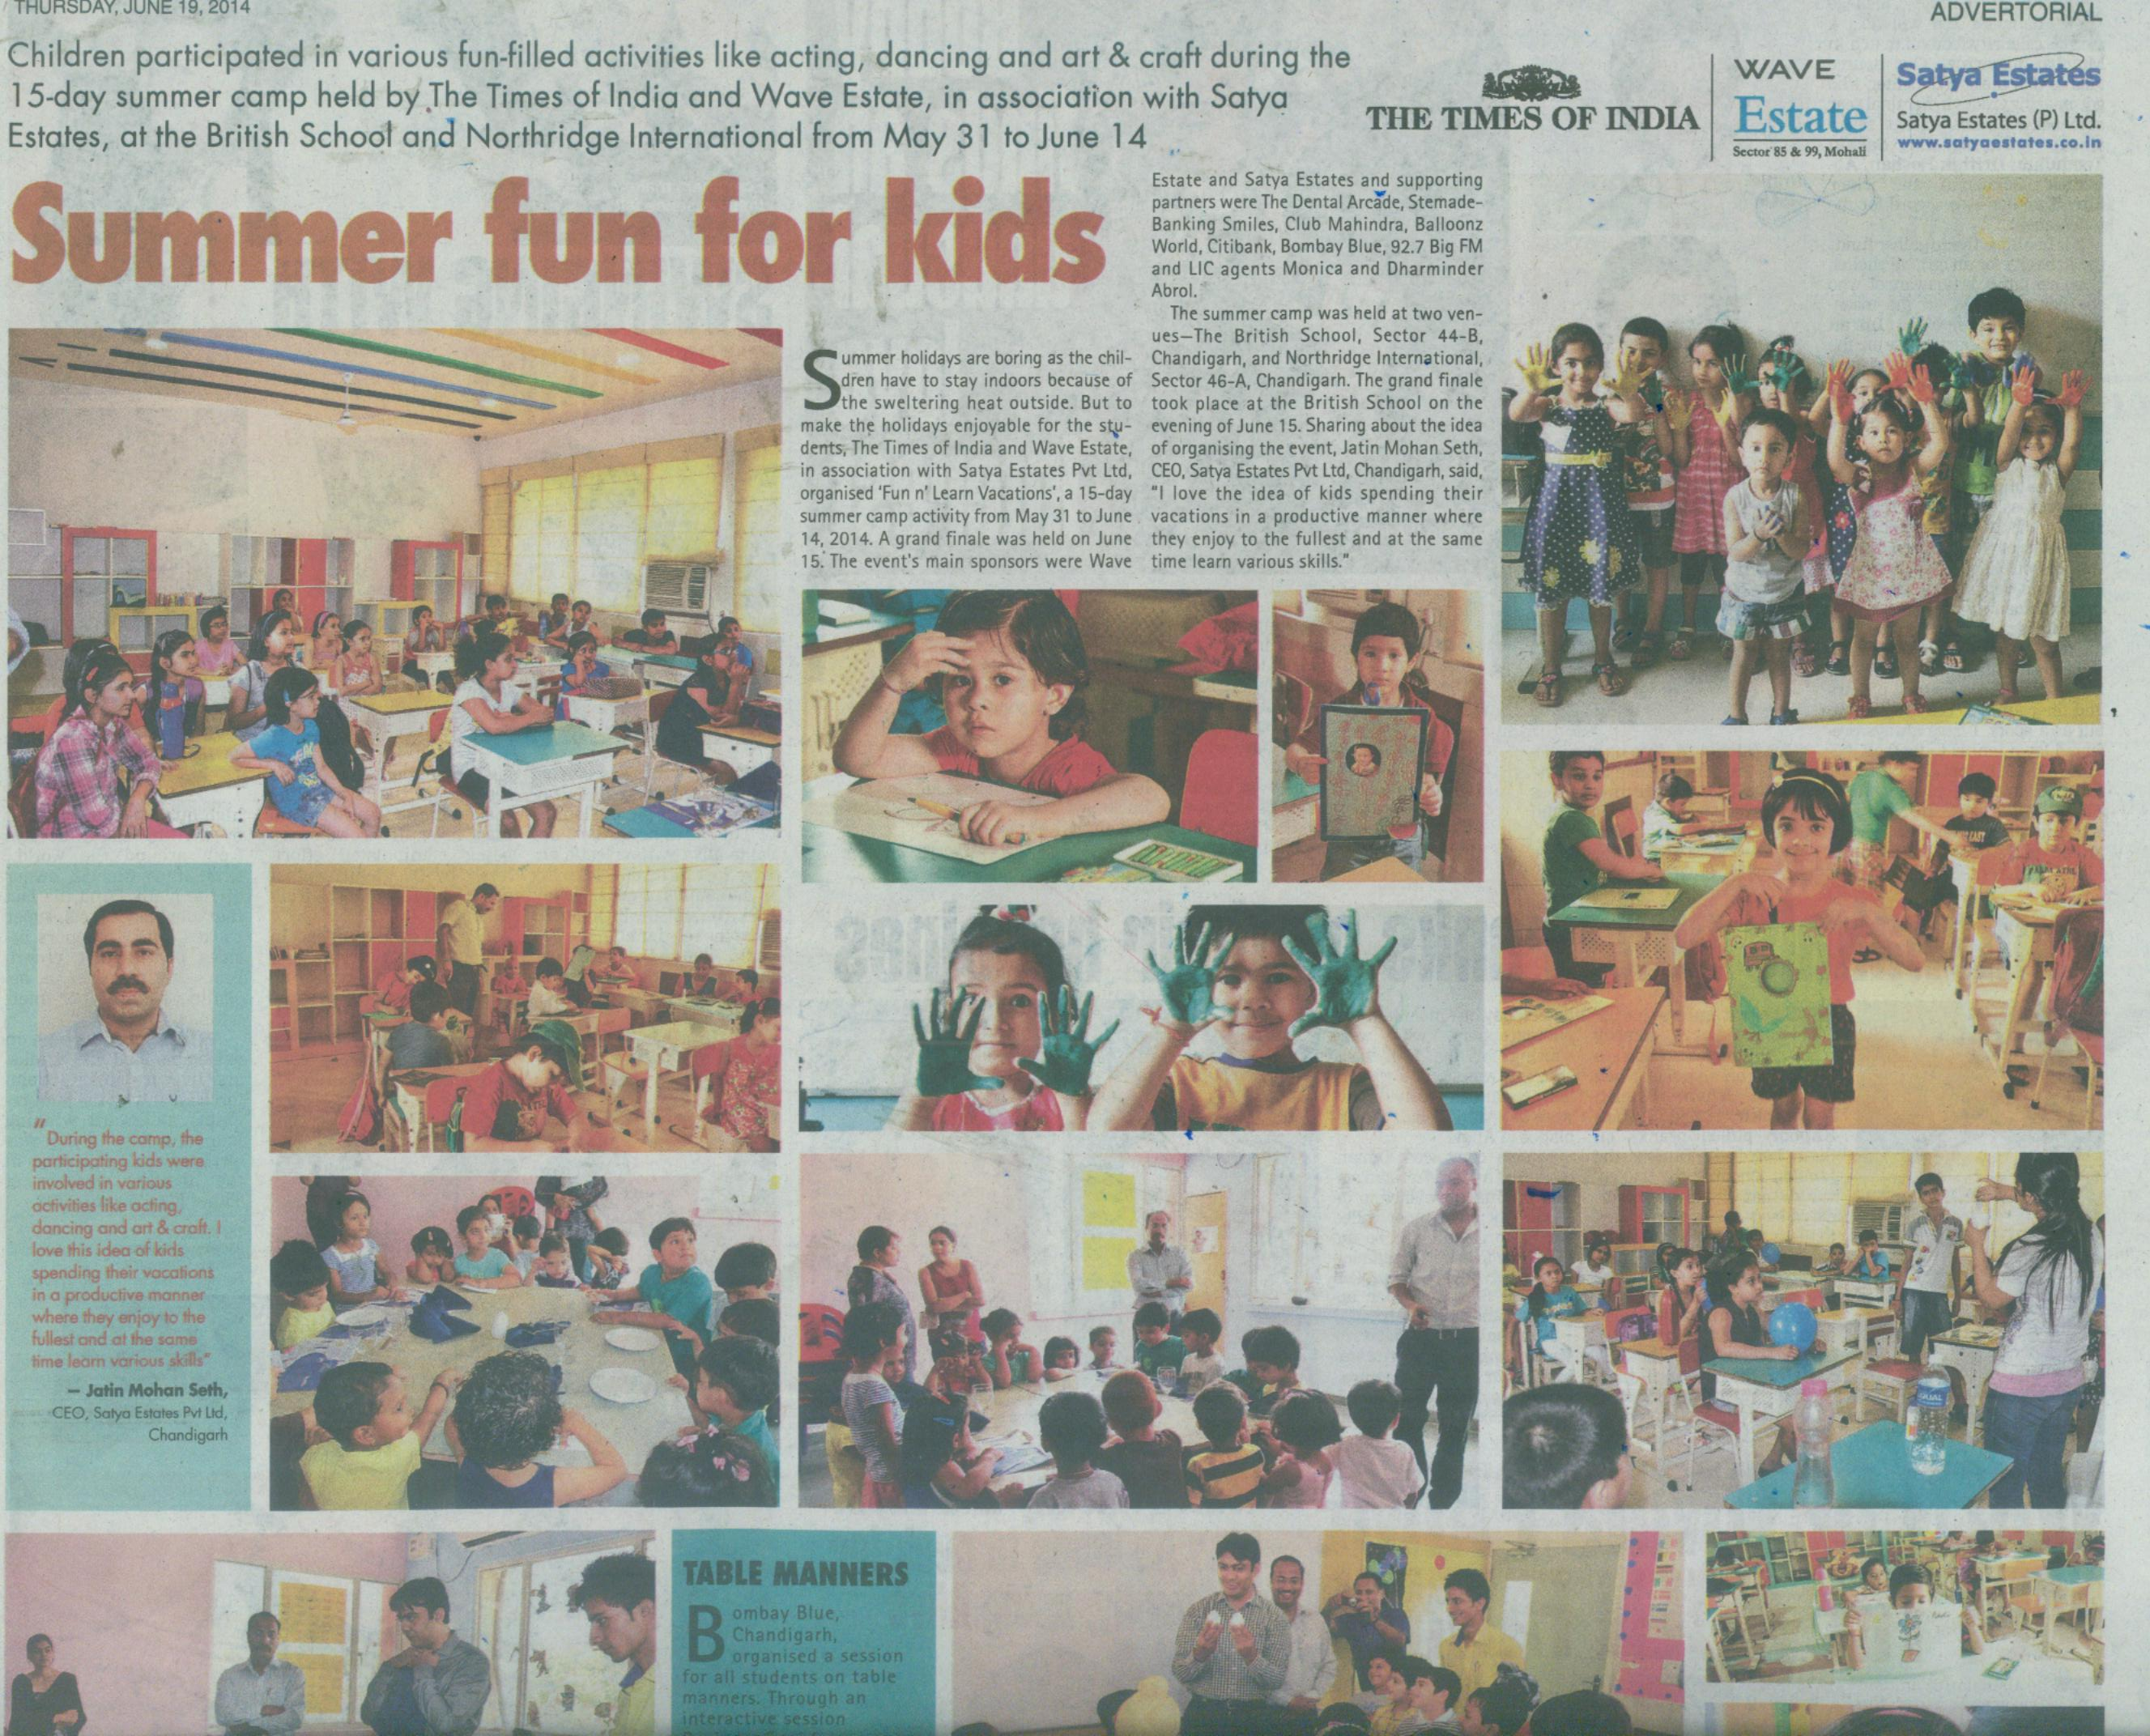 TOI and Wave Estate organized 15 day summer camp at British School.